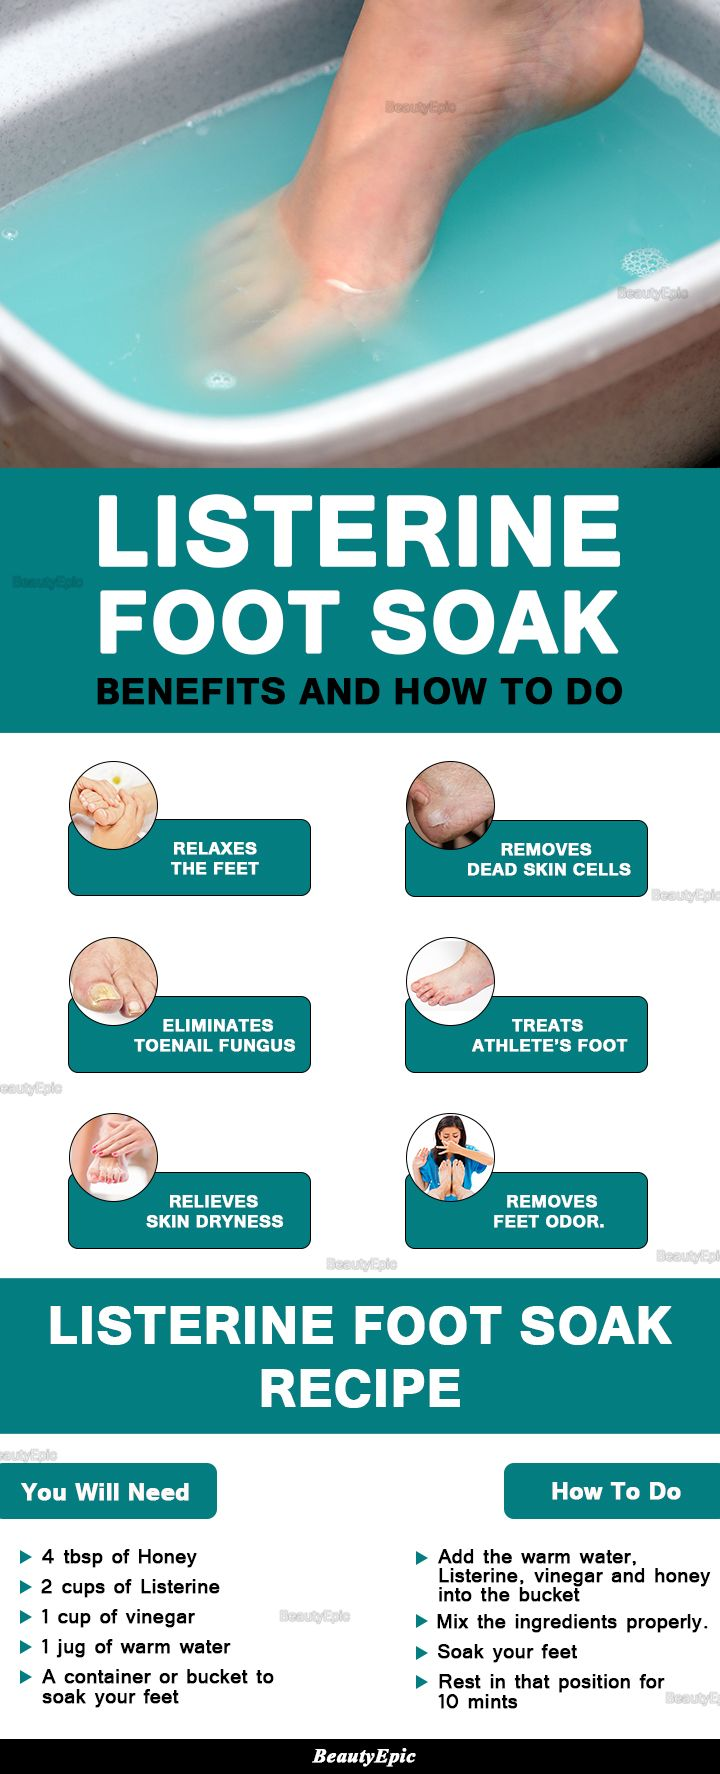 Listerine Foot Soak Benefits and How to Do